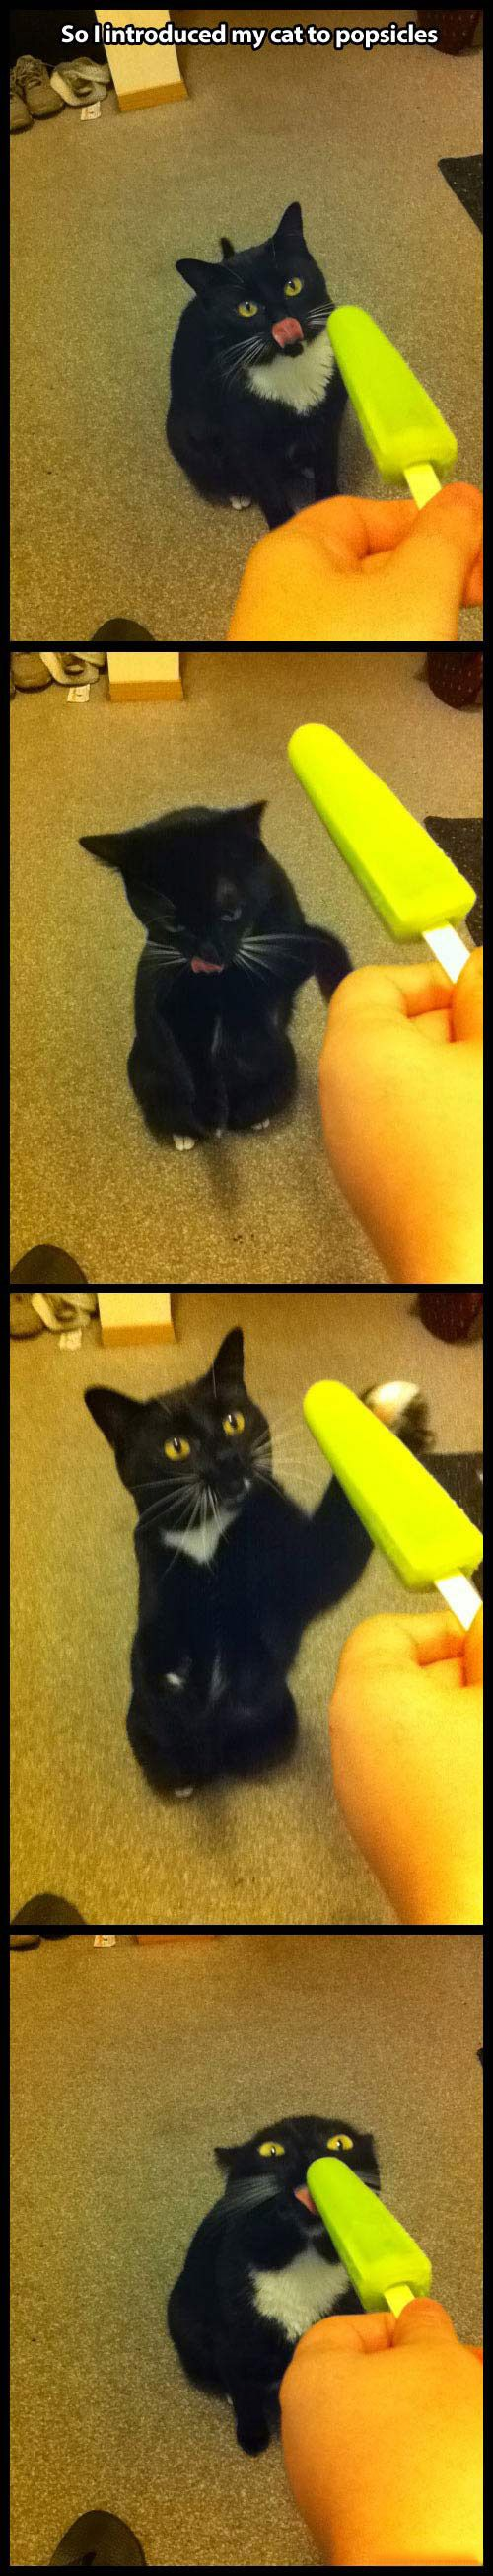 When you give a cat a Popsicle . . .: Funny Animals, Picture, Cats, Cat Face, Kitty Cat, Funny Cat, Cat Love, Crazy Cat